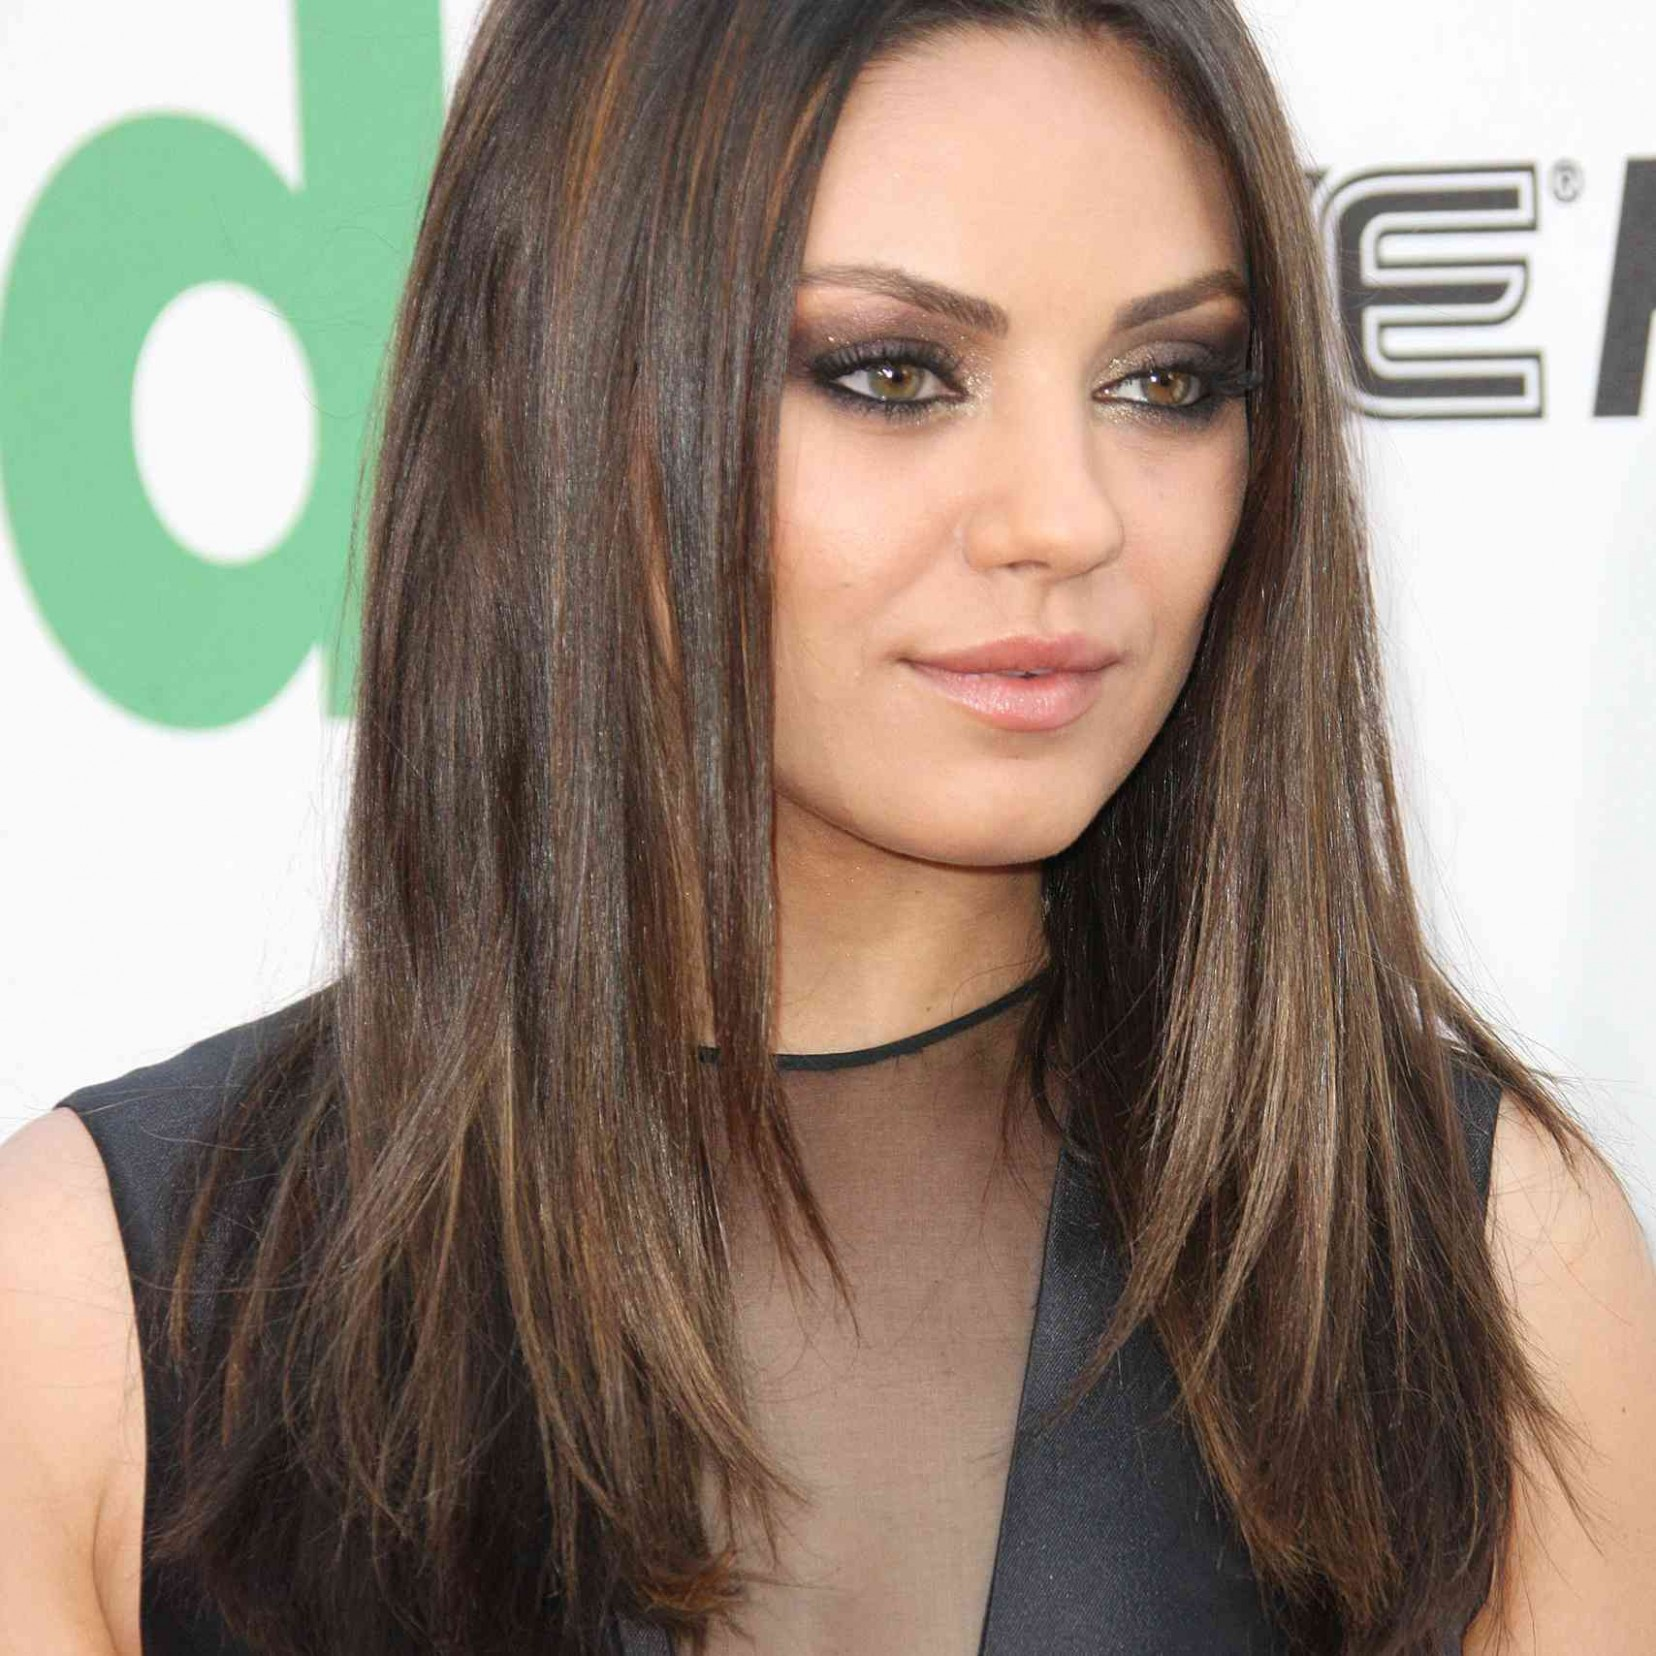 9 Of The Best Hairstyles For Round Faces Cuts For Round Faces